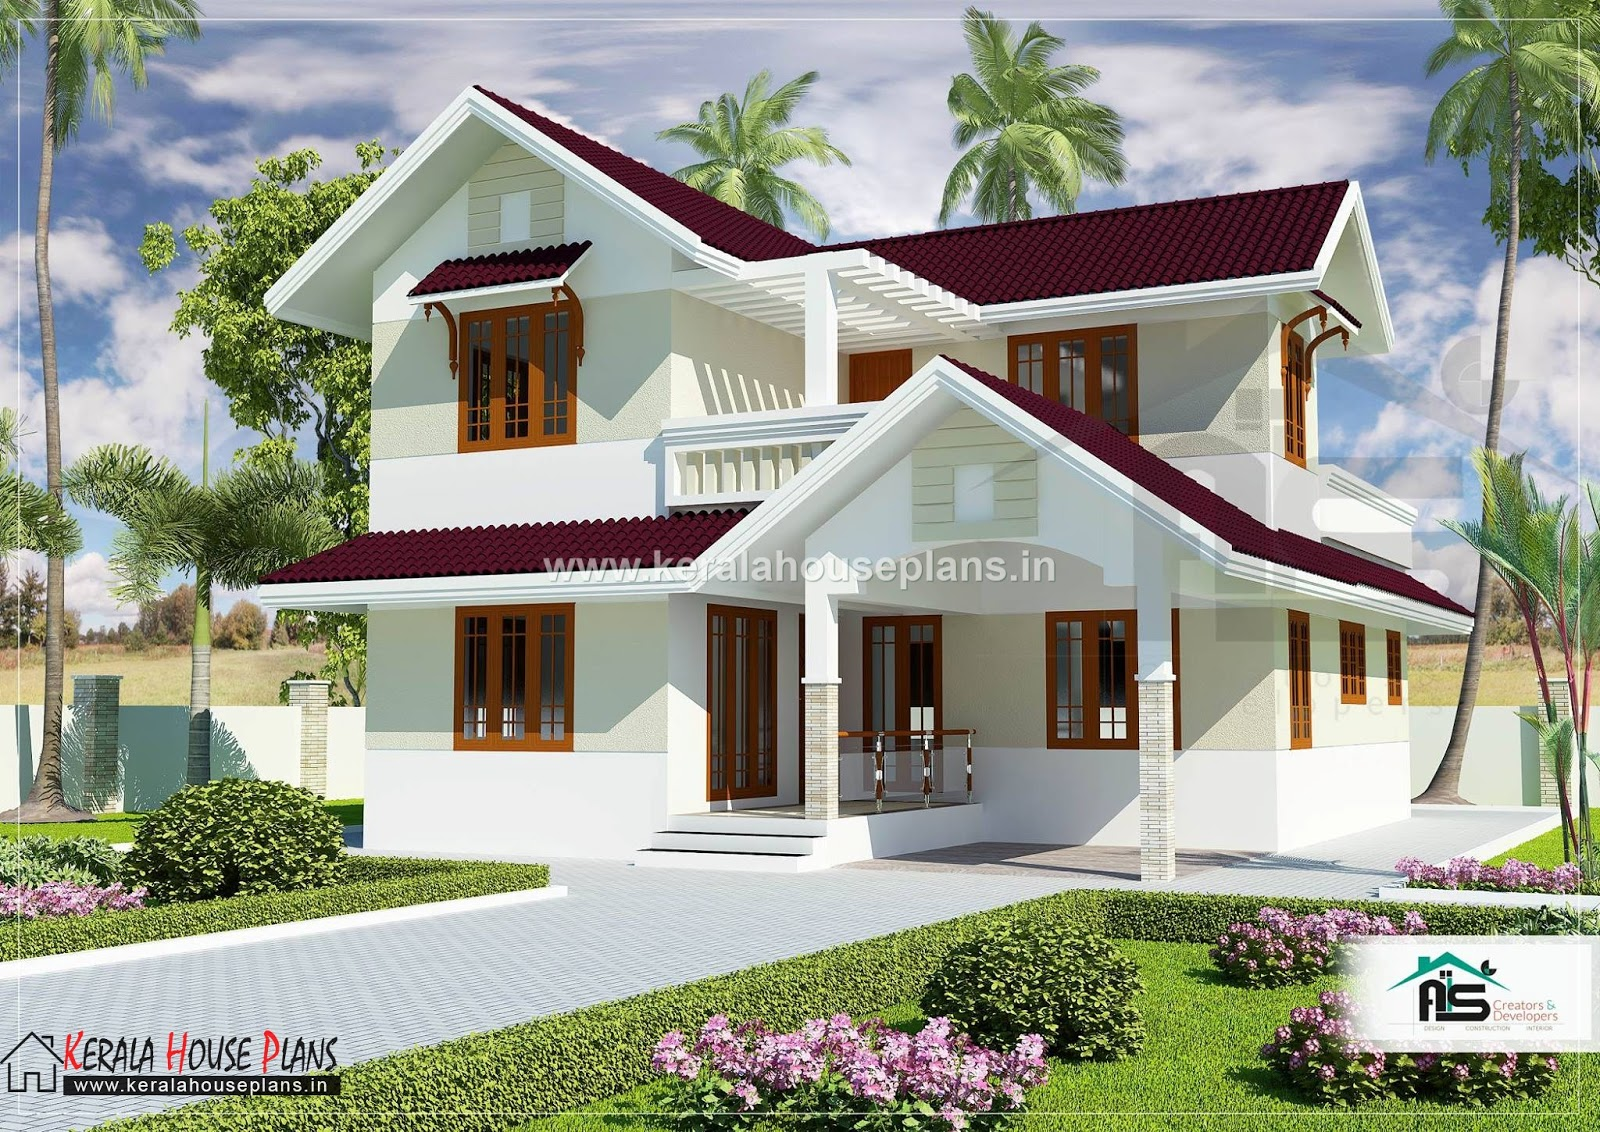 Front Elevation Of Kerala Model Houses : Kerala model houses plans home design and style